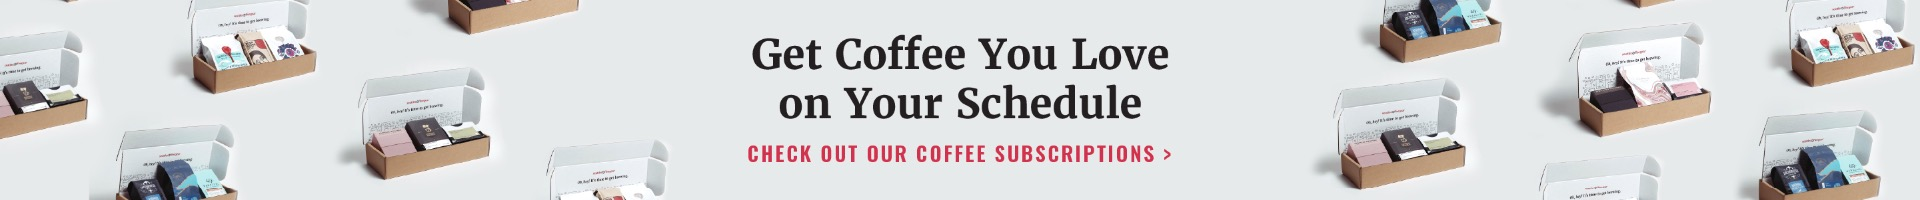 Get coffee you love on your Schedule. Check out our coffee subscriptions!